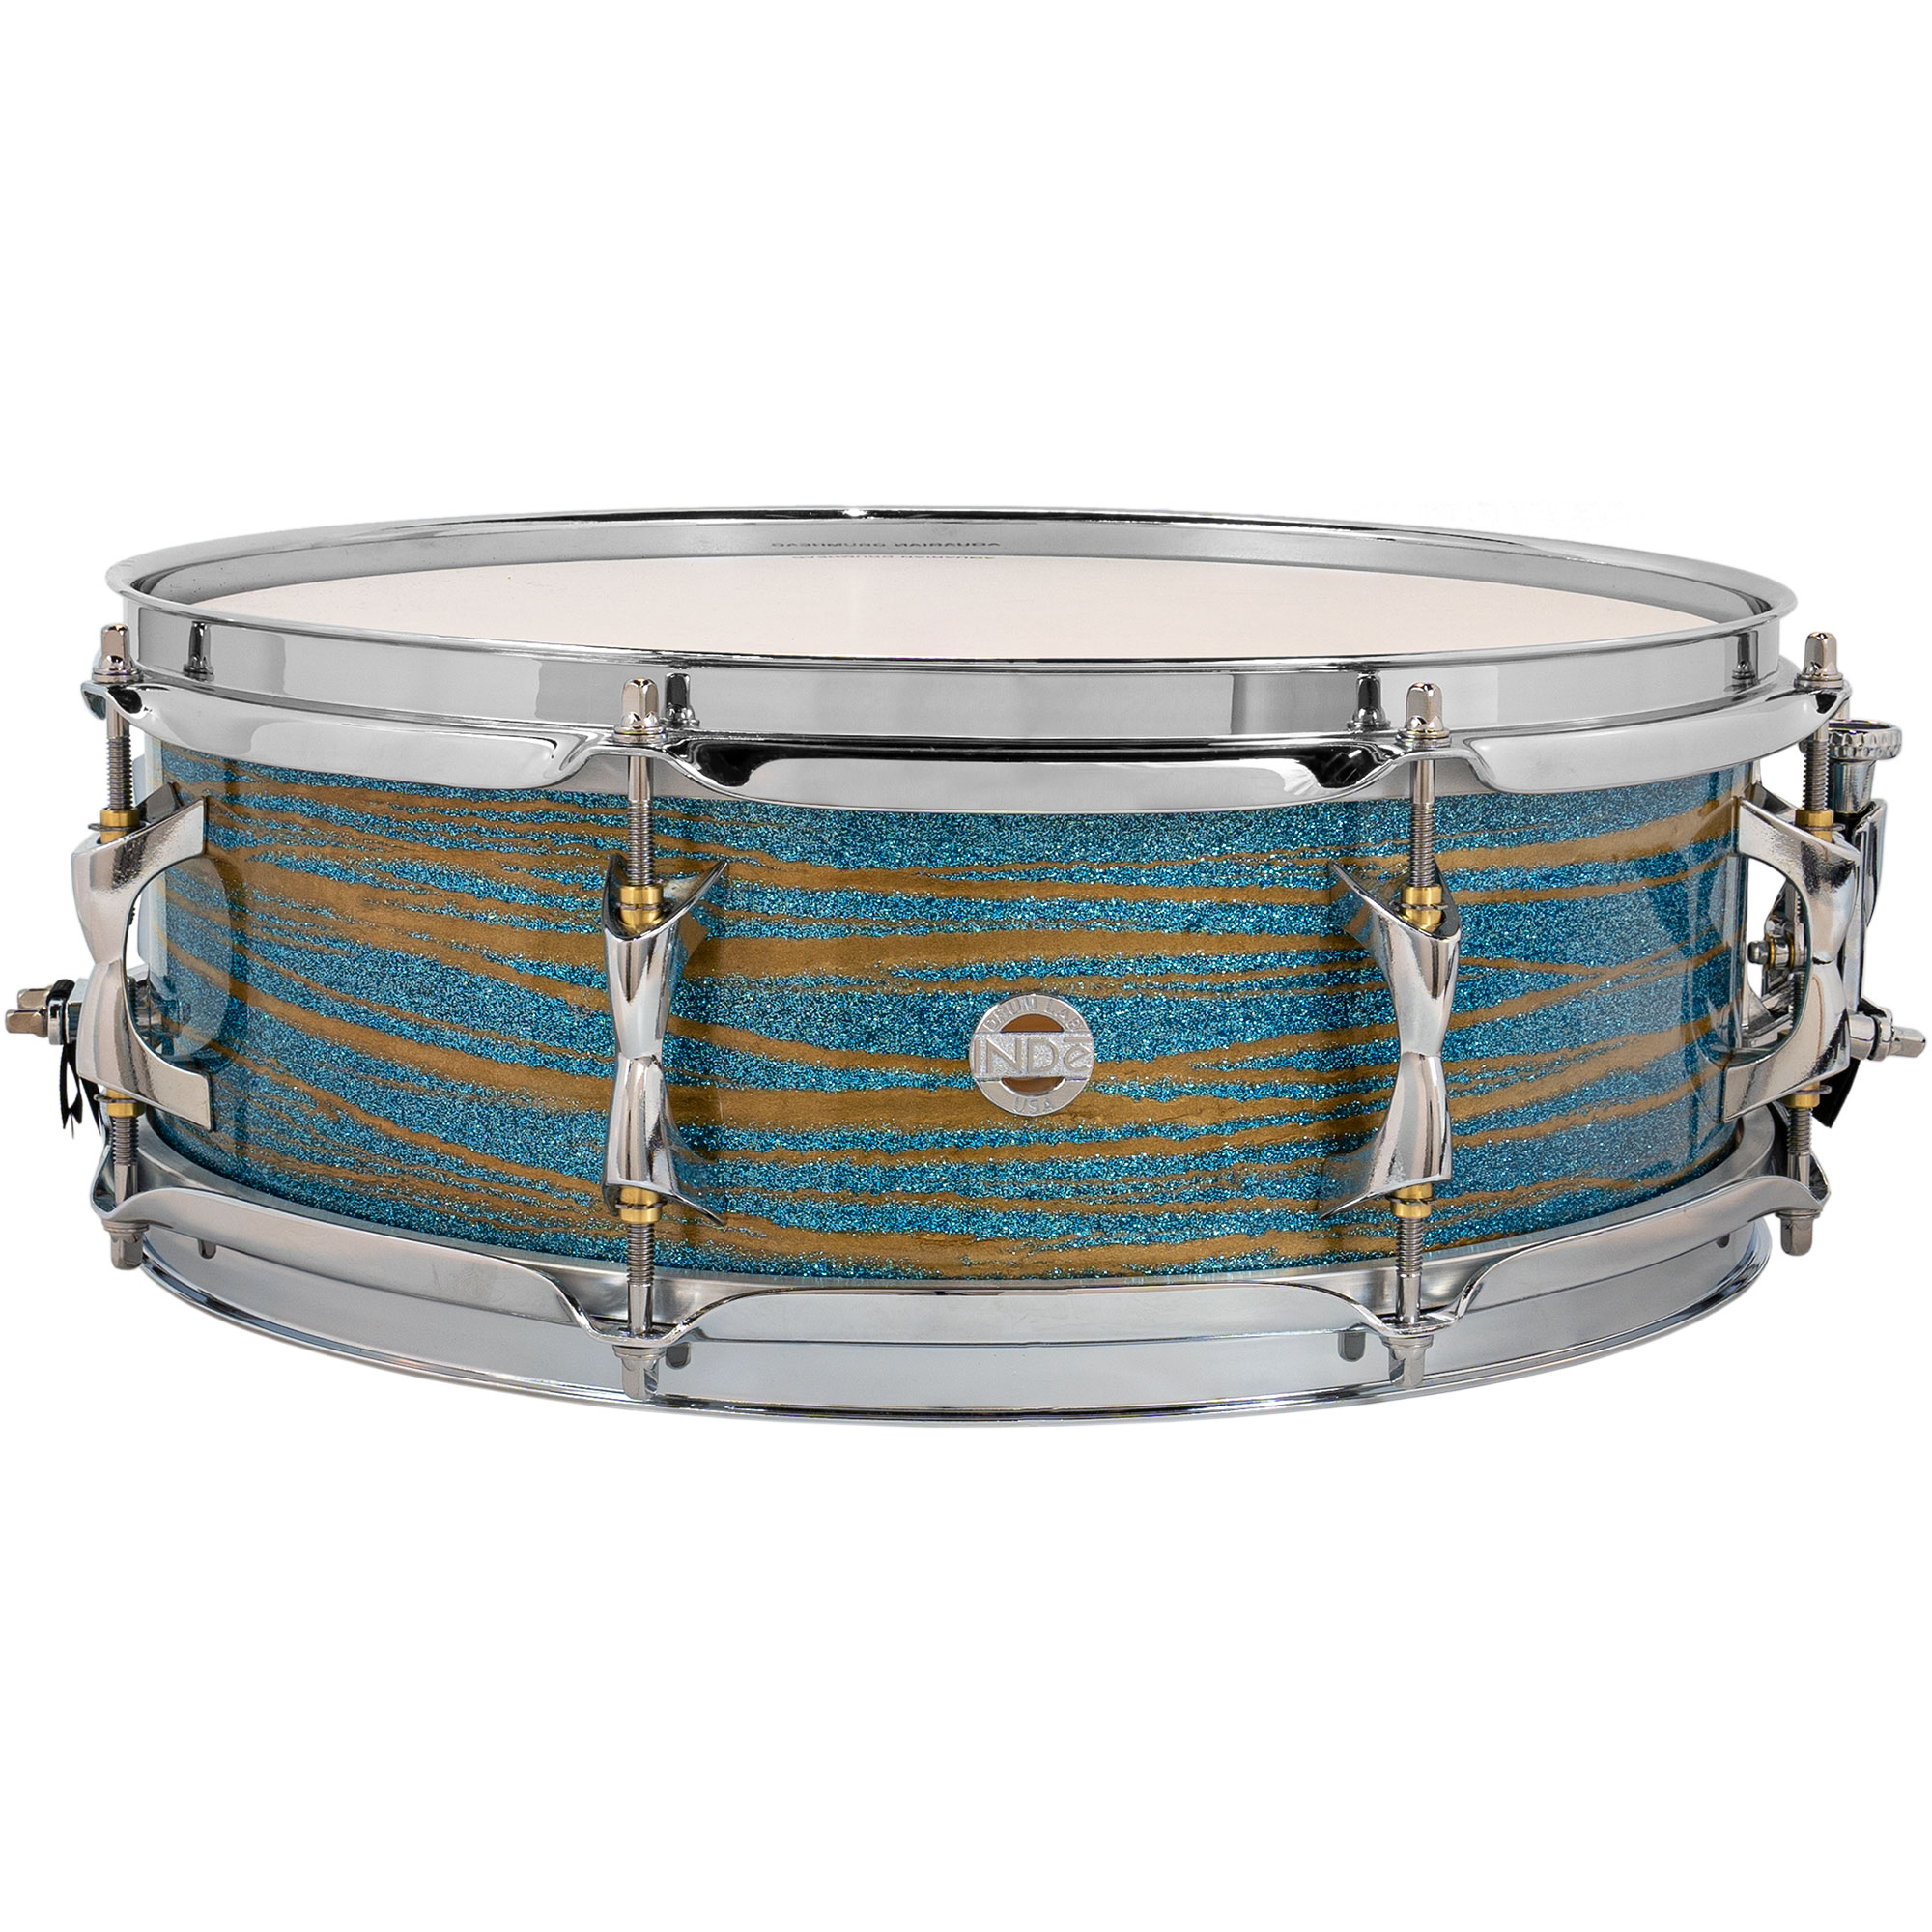 "Inde 5"" x 14"" ResoArmor Snare Drum in Blue Sparkle with Gold Swirl (Demo)"